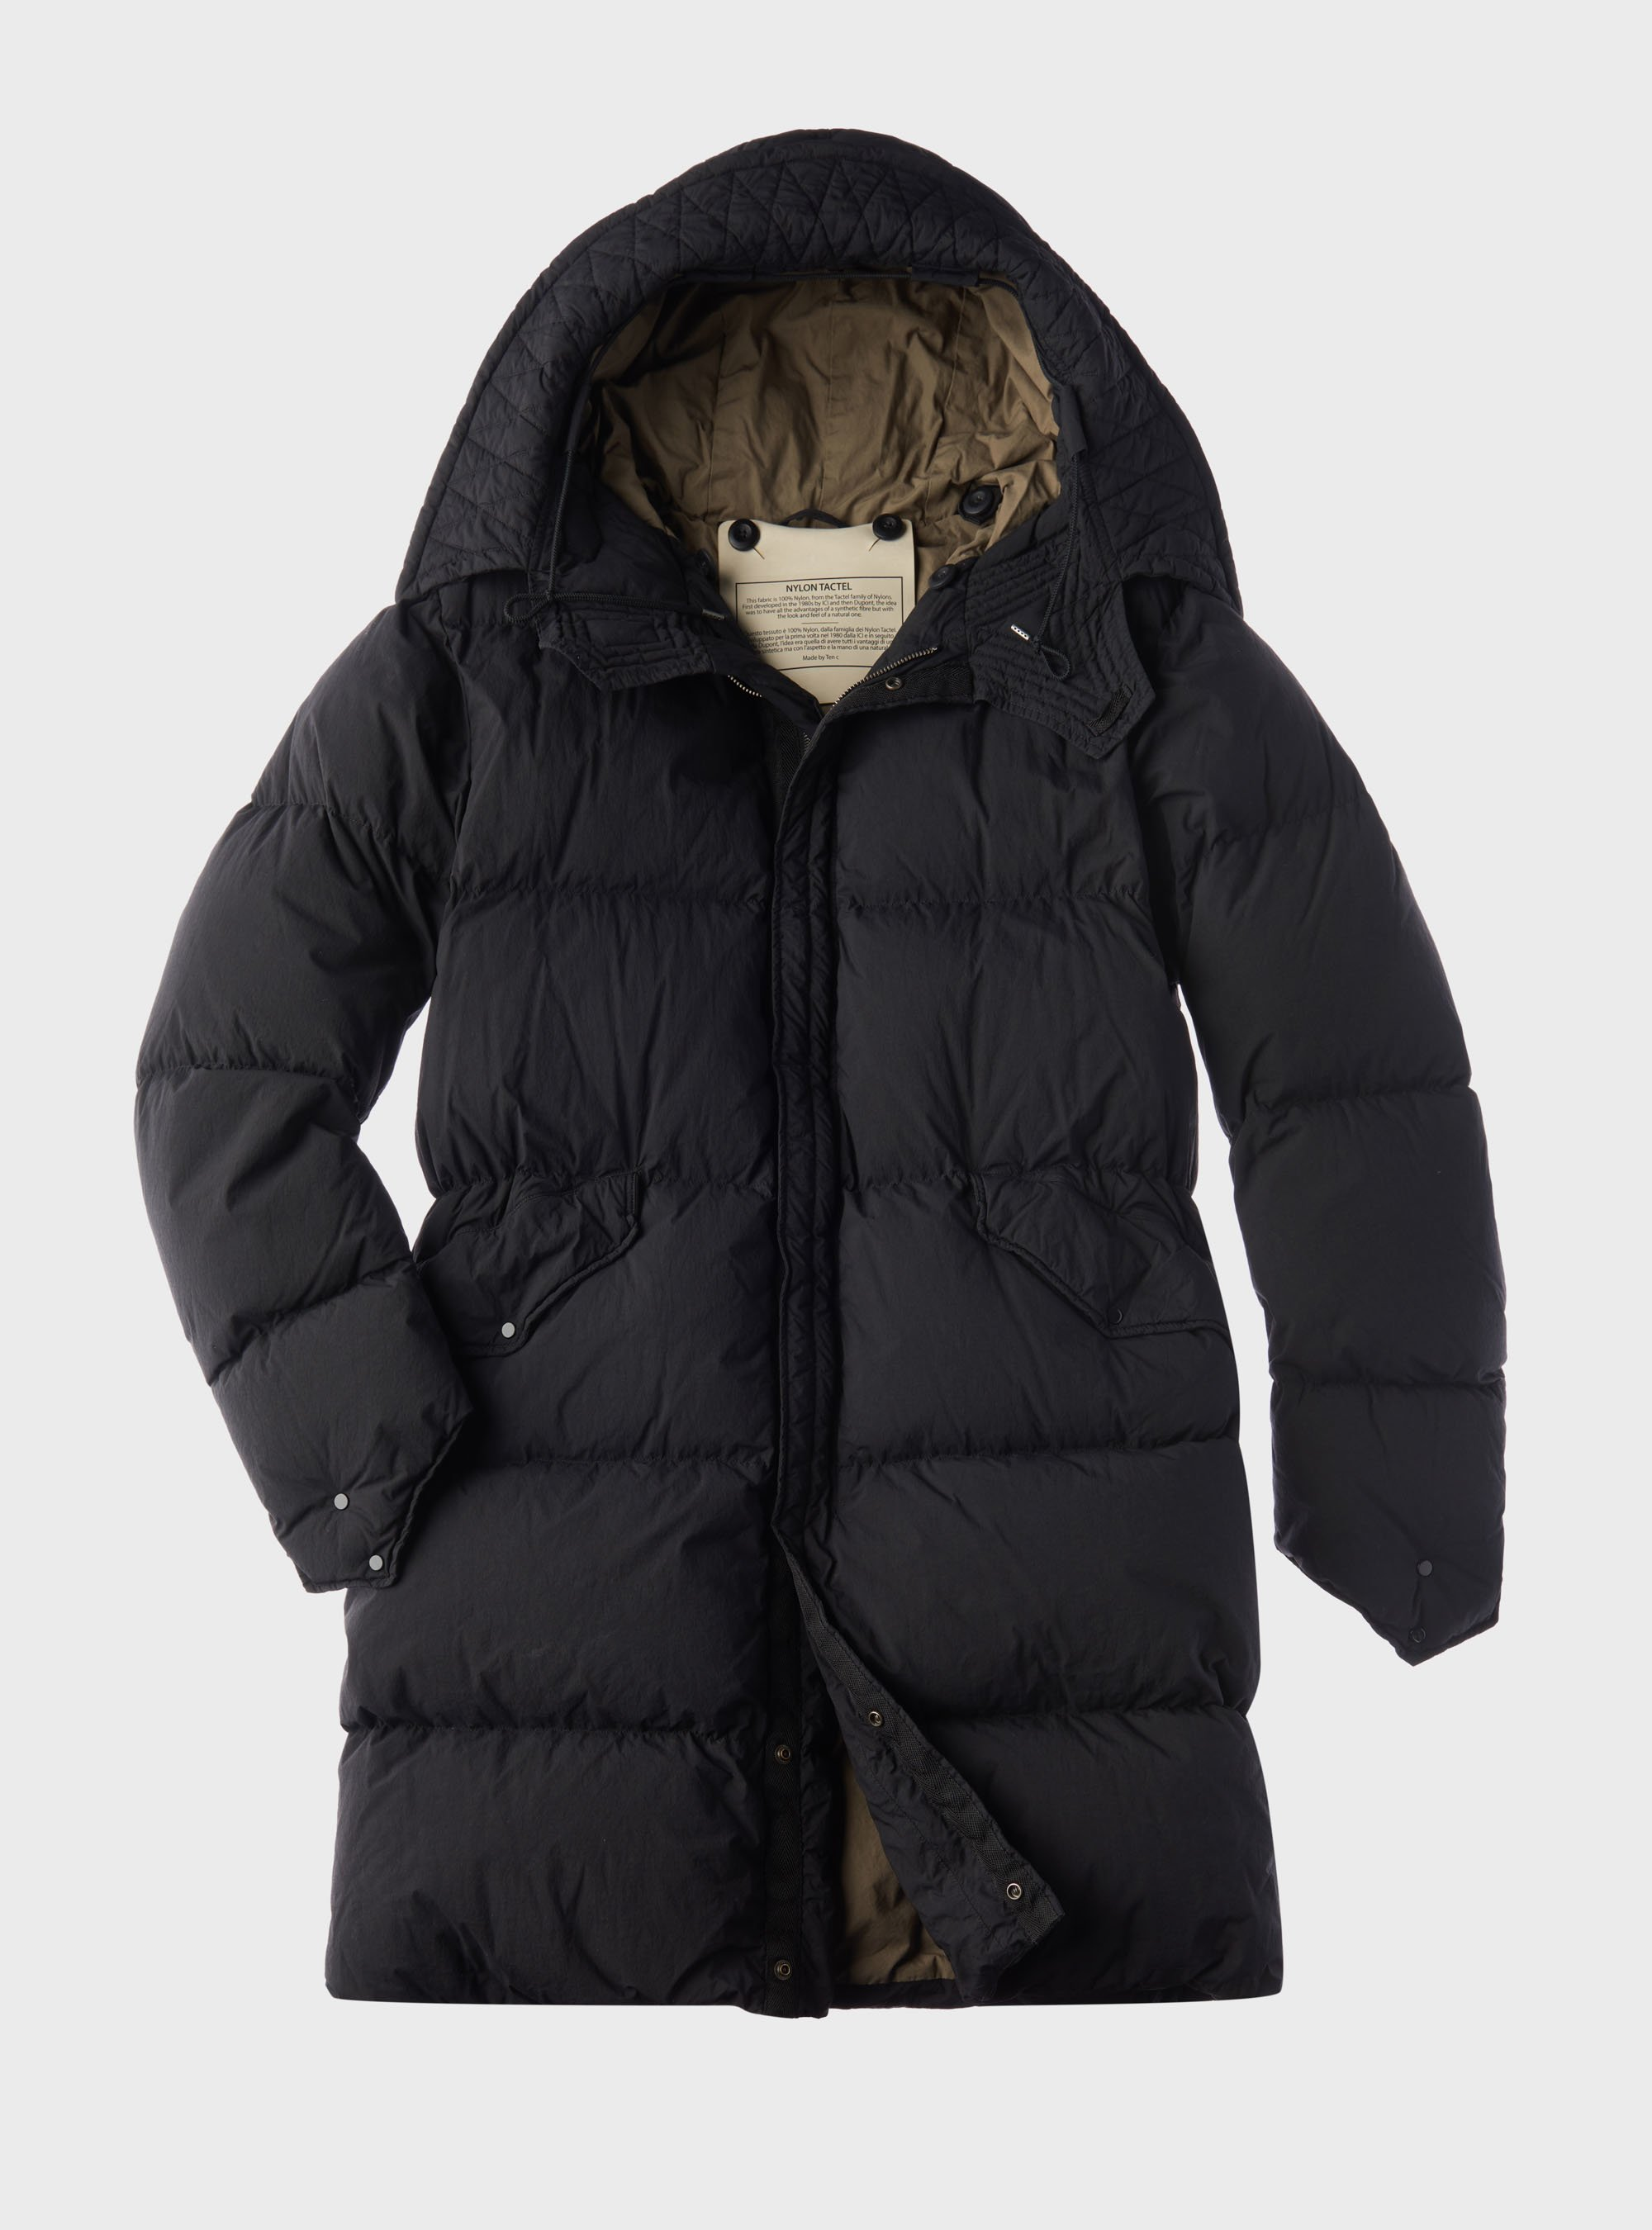 TEN C - MOUNTAIN RESCUE DOWN PARKA - Black - TEN C